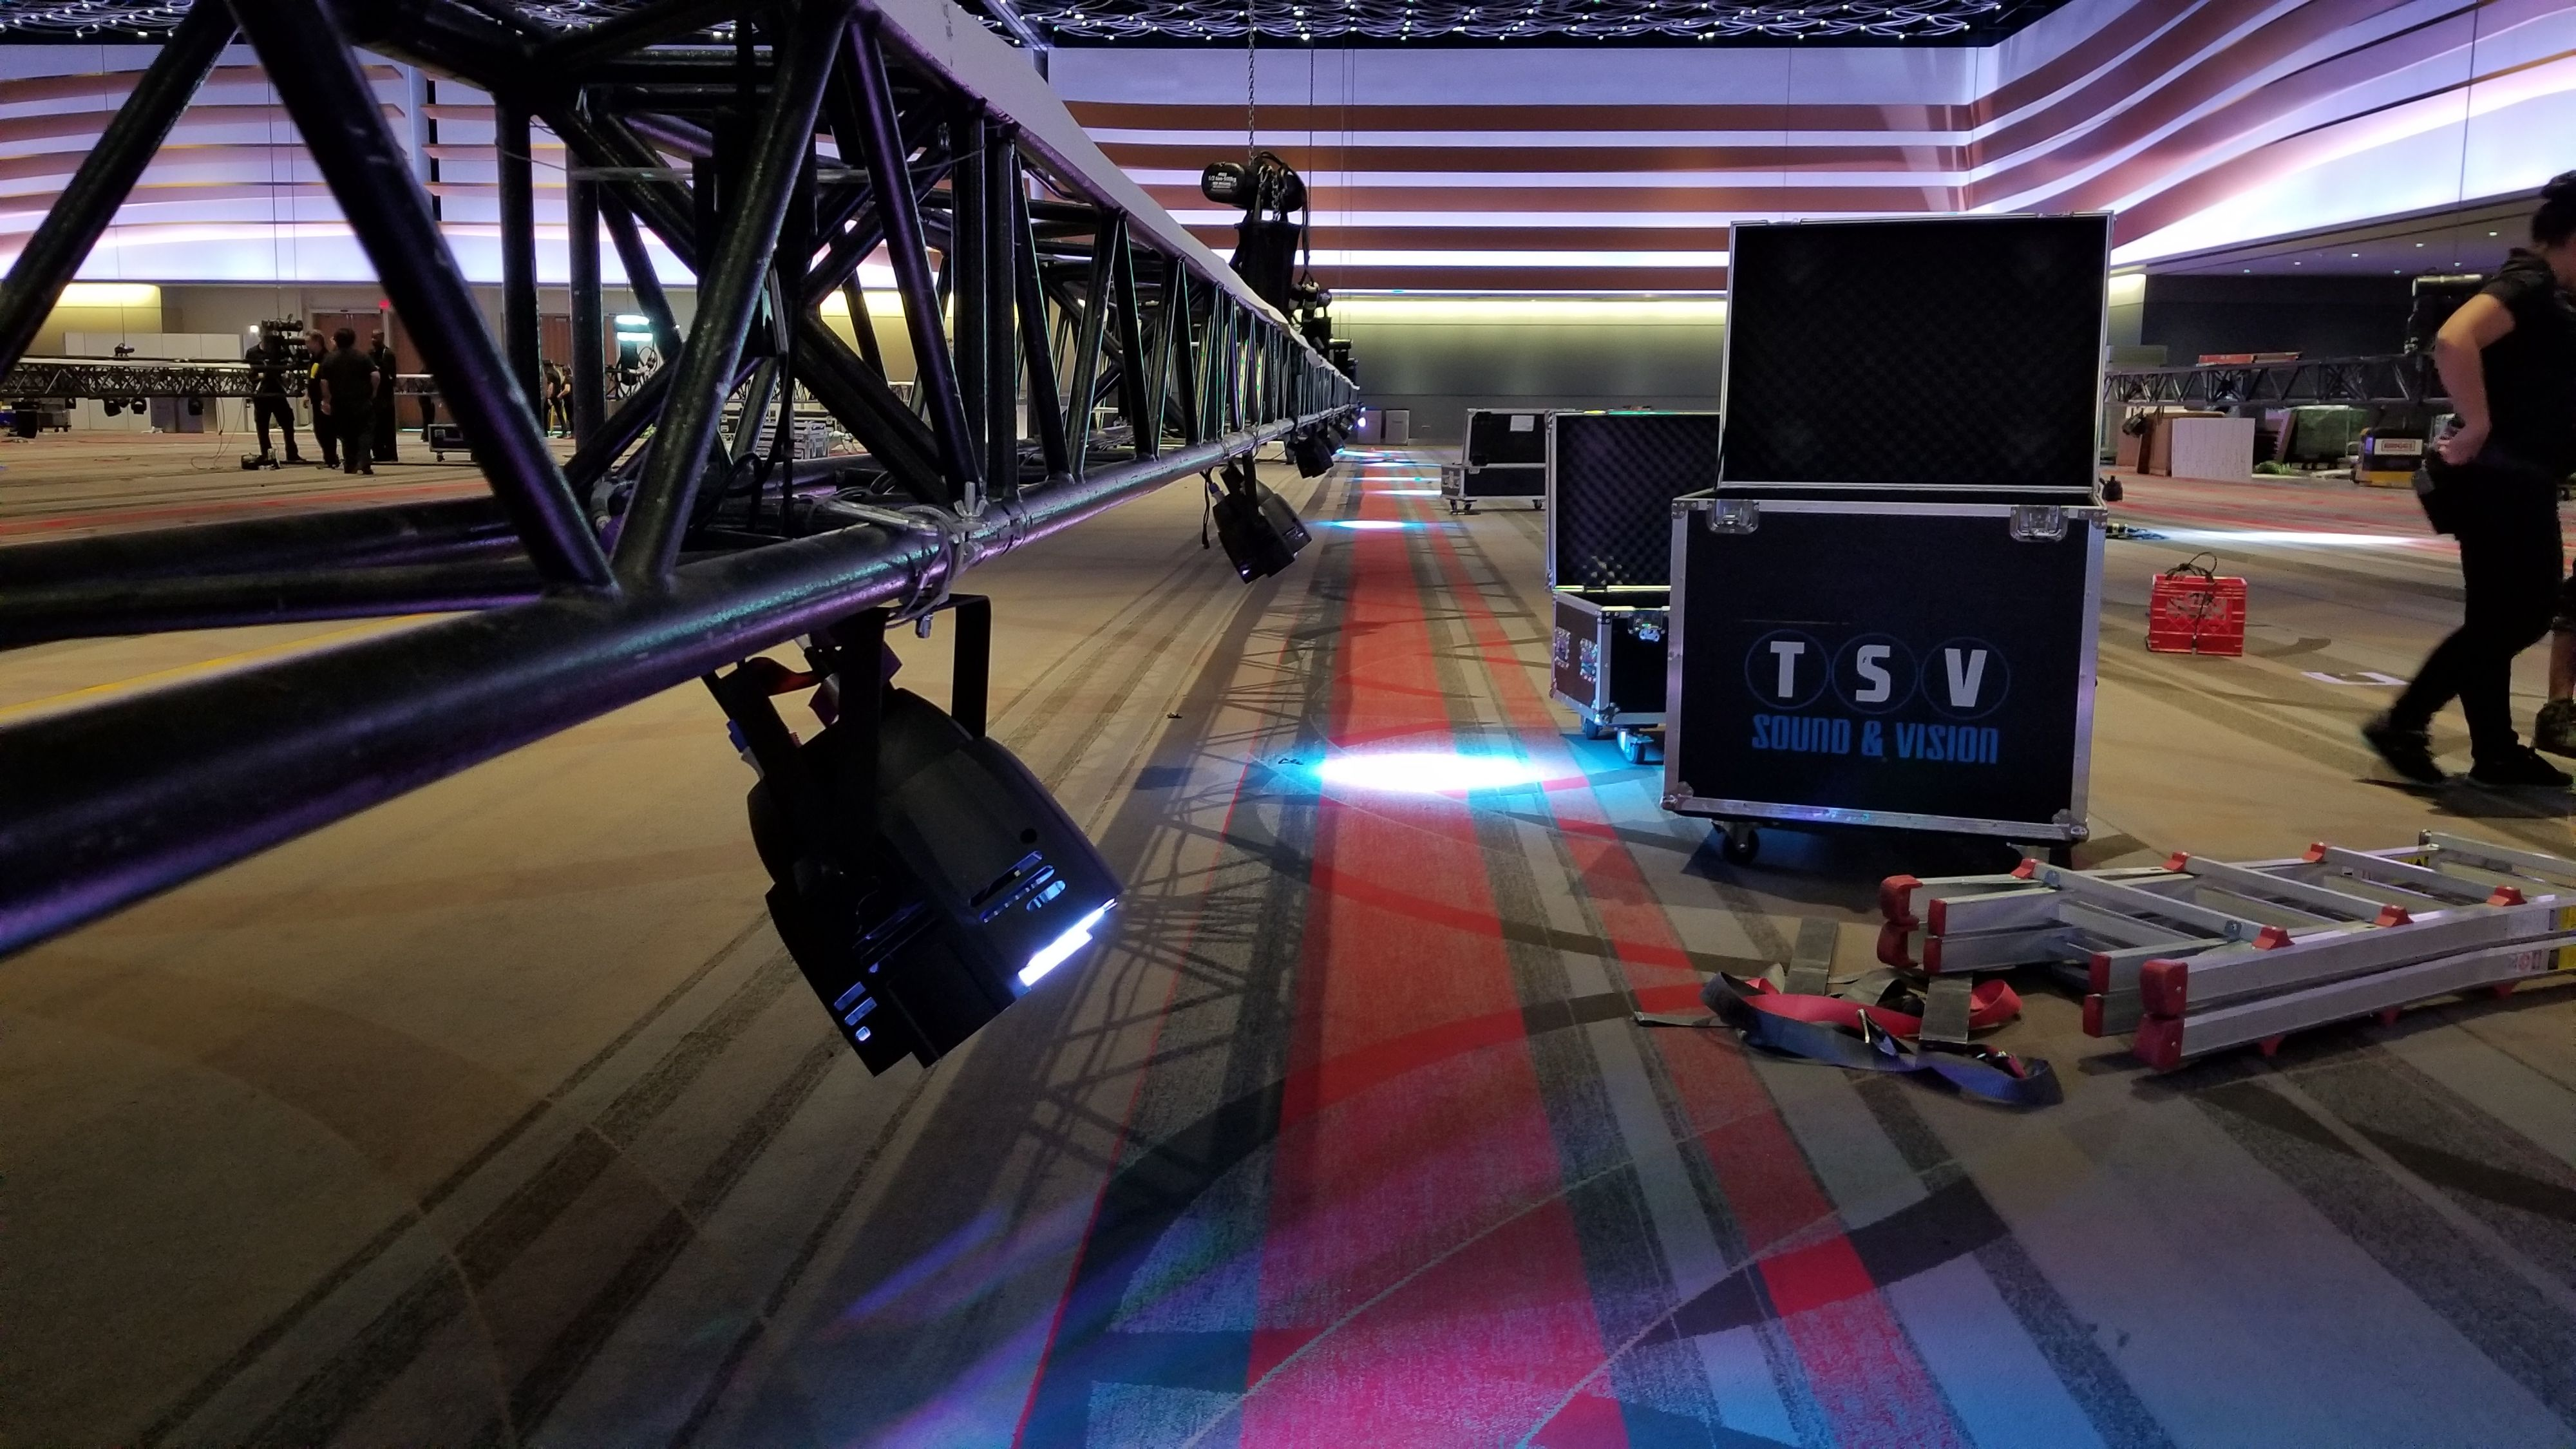 LED Light rigged to truss at conference